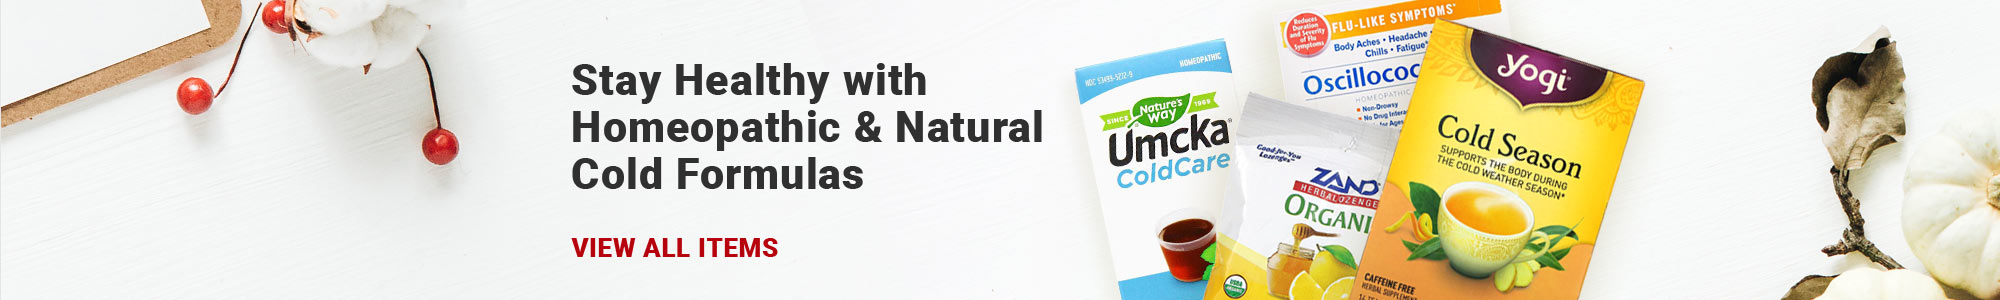 Stay Healthy with Homeopathic & Natural Cold Formulas. VIEW ALL ITEMS